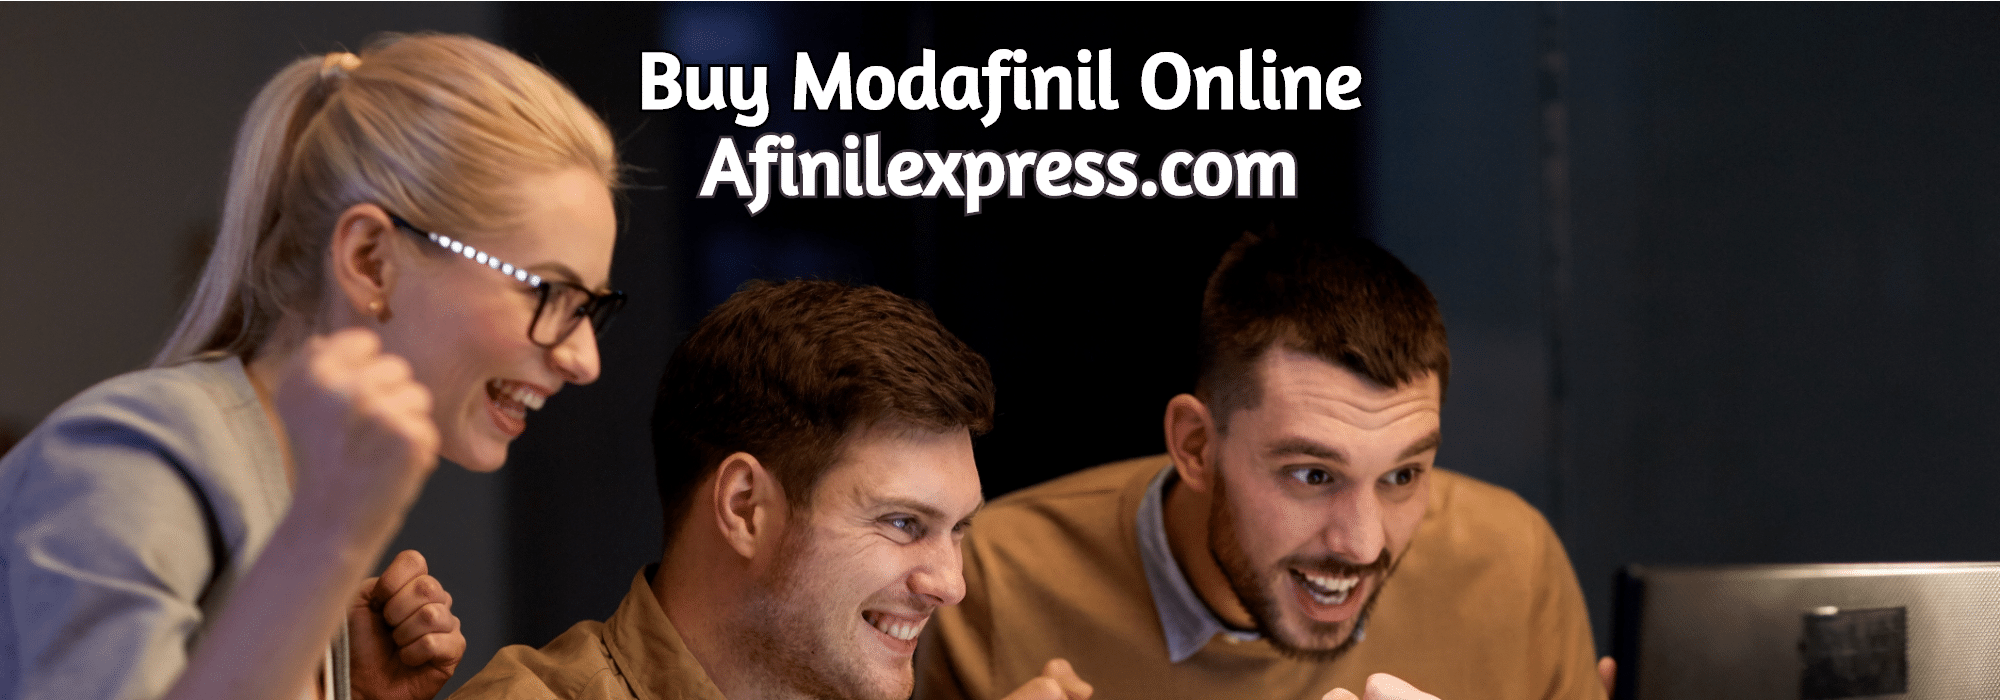 Modafinil The Pill Fit for Politics, afinilexpress.org